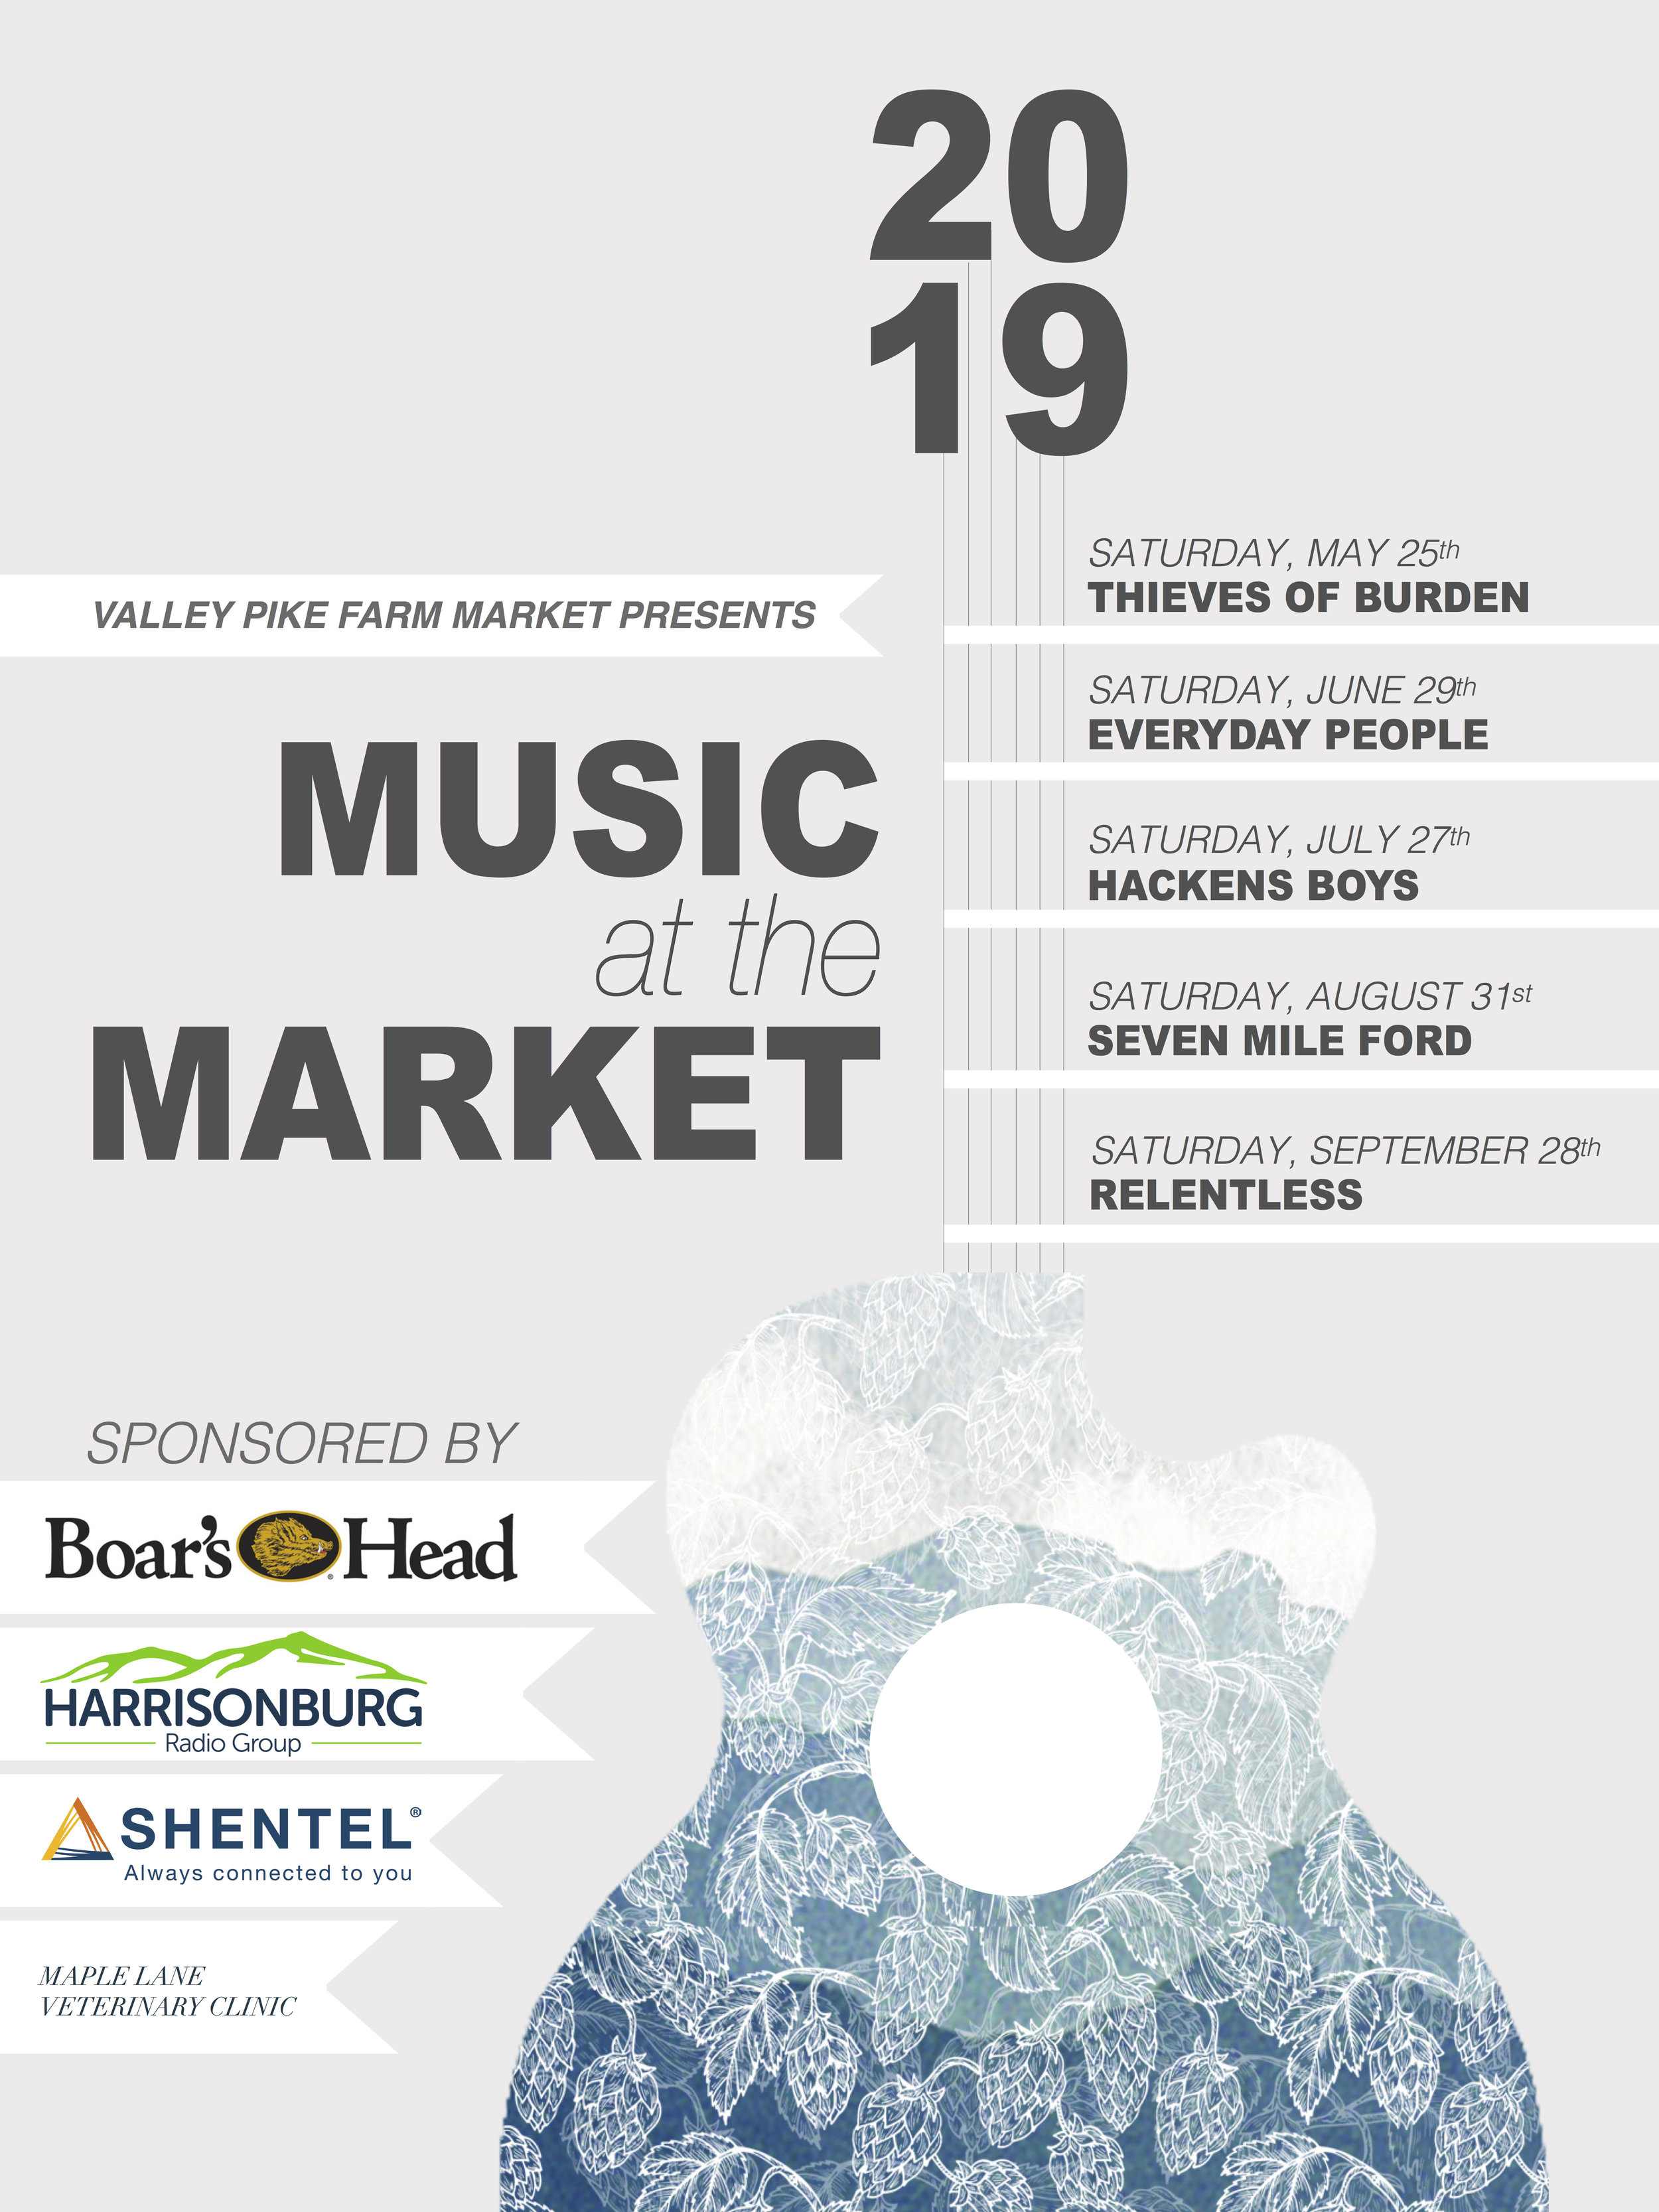 MUSIC AT THE MARKET_2019 with sponsors.jpg